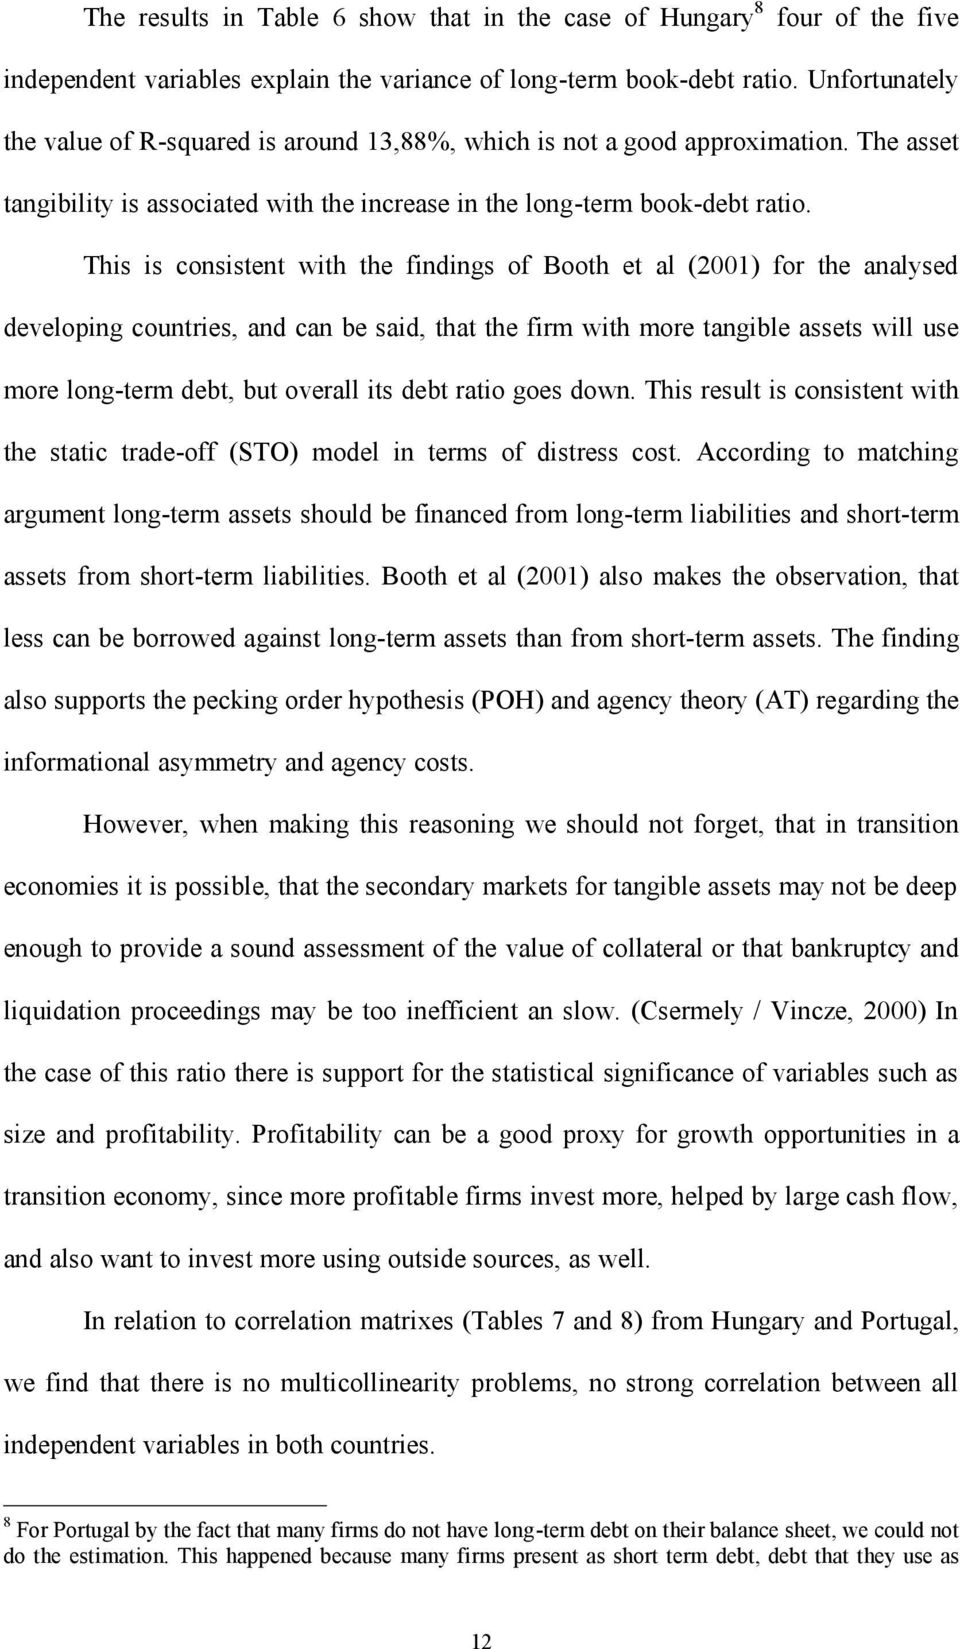 This is consistent with the findings of Booth et al (2001) for the analysed developing countries, and can be said, that the firm with more tangible assets will use more long-term debt, but overall